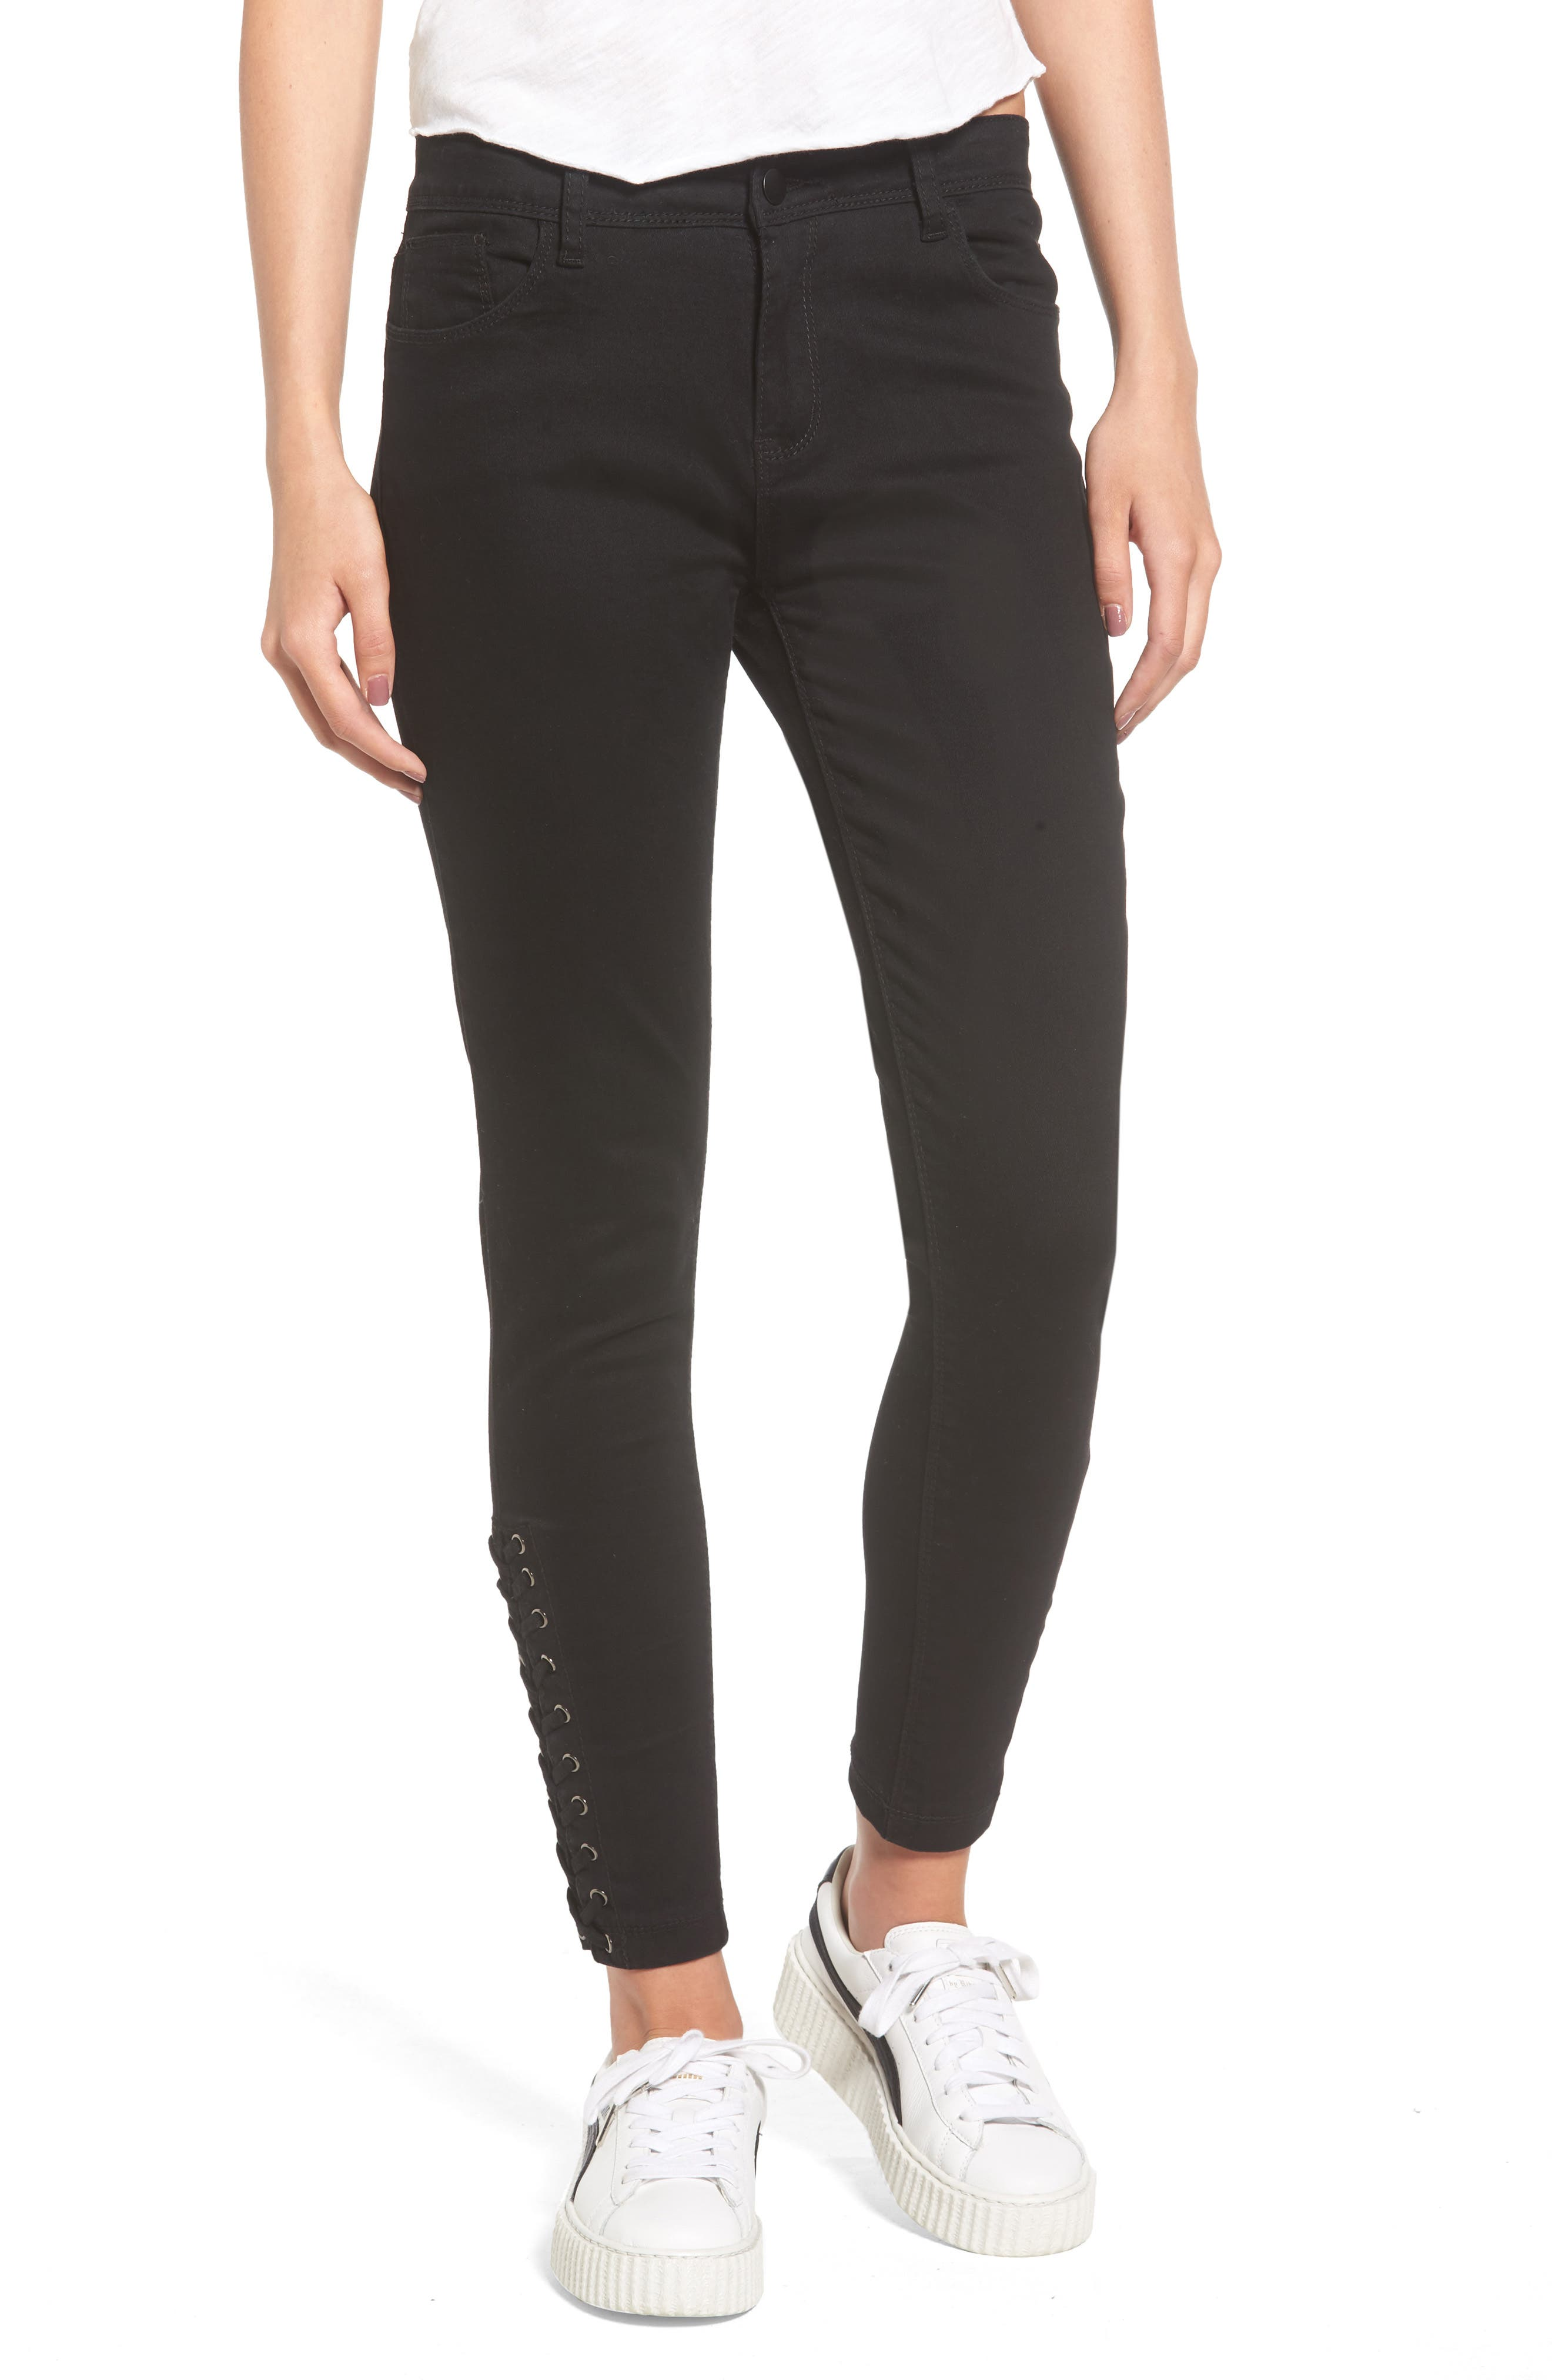 Rockaway Skinny Jeans,                         Main,                         color, Black